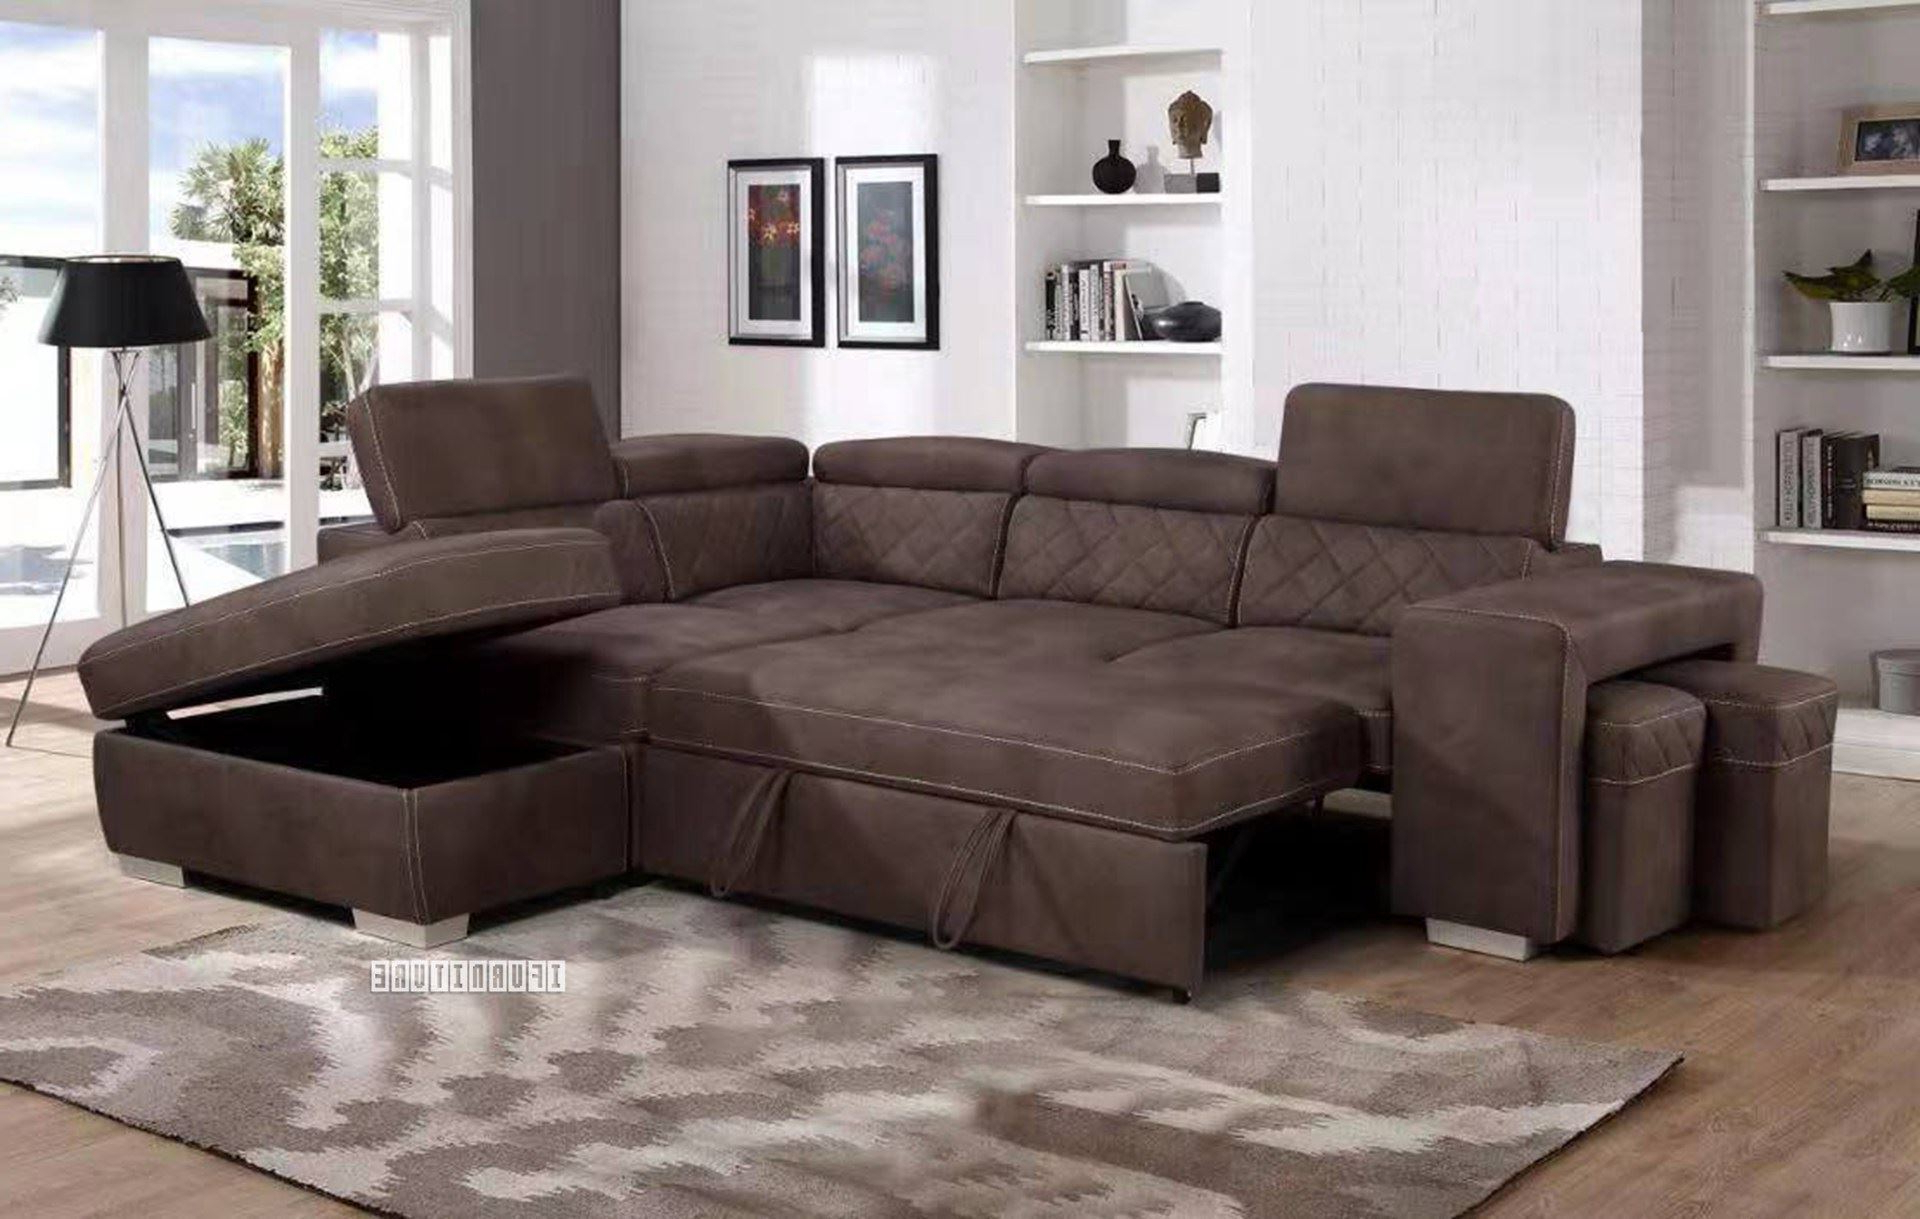 Hartford Storage Sectional Futon Sofas Throughout Most Popular Aria Sectional Sofa/ Sofa Bed With Storage & 2 Ottomans (View 16 of 25)